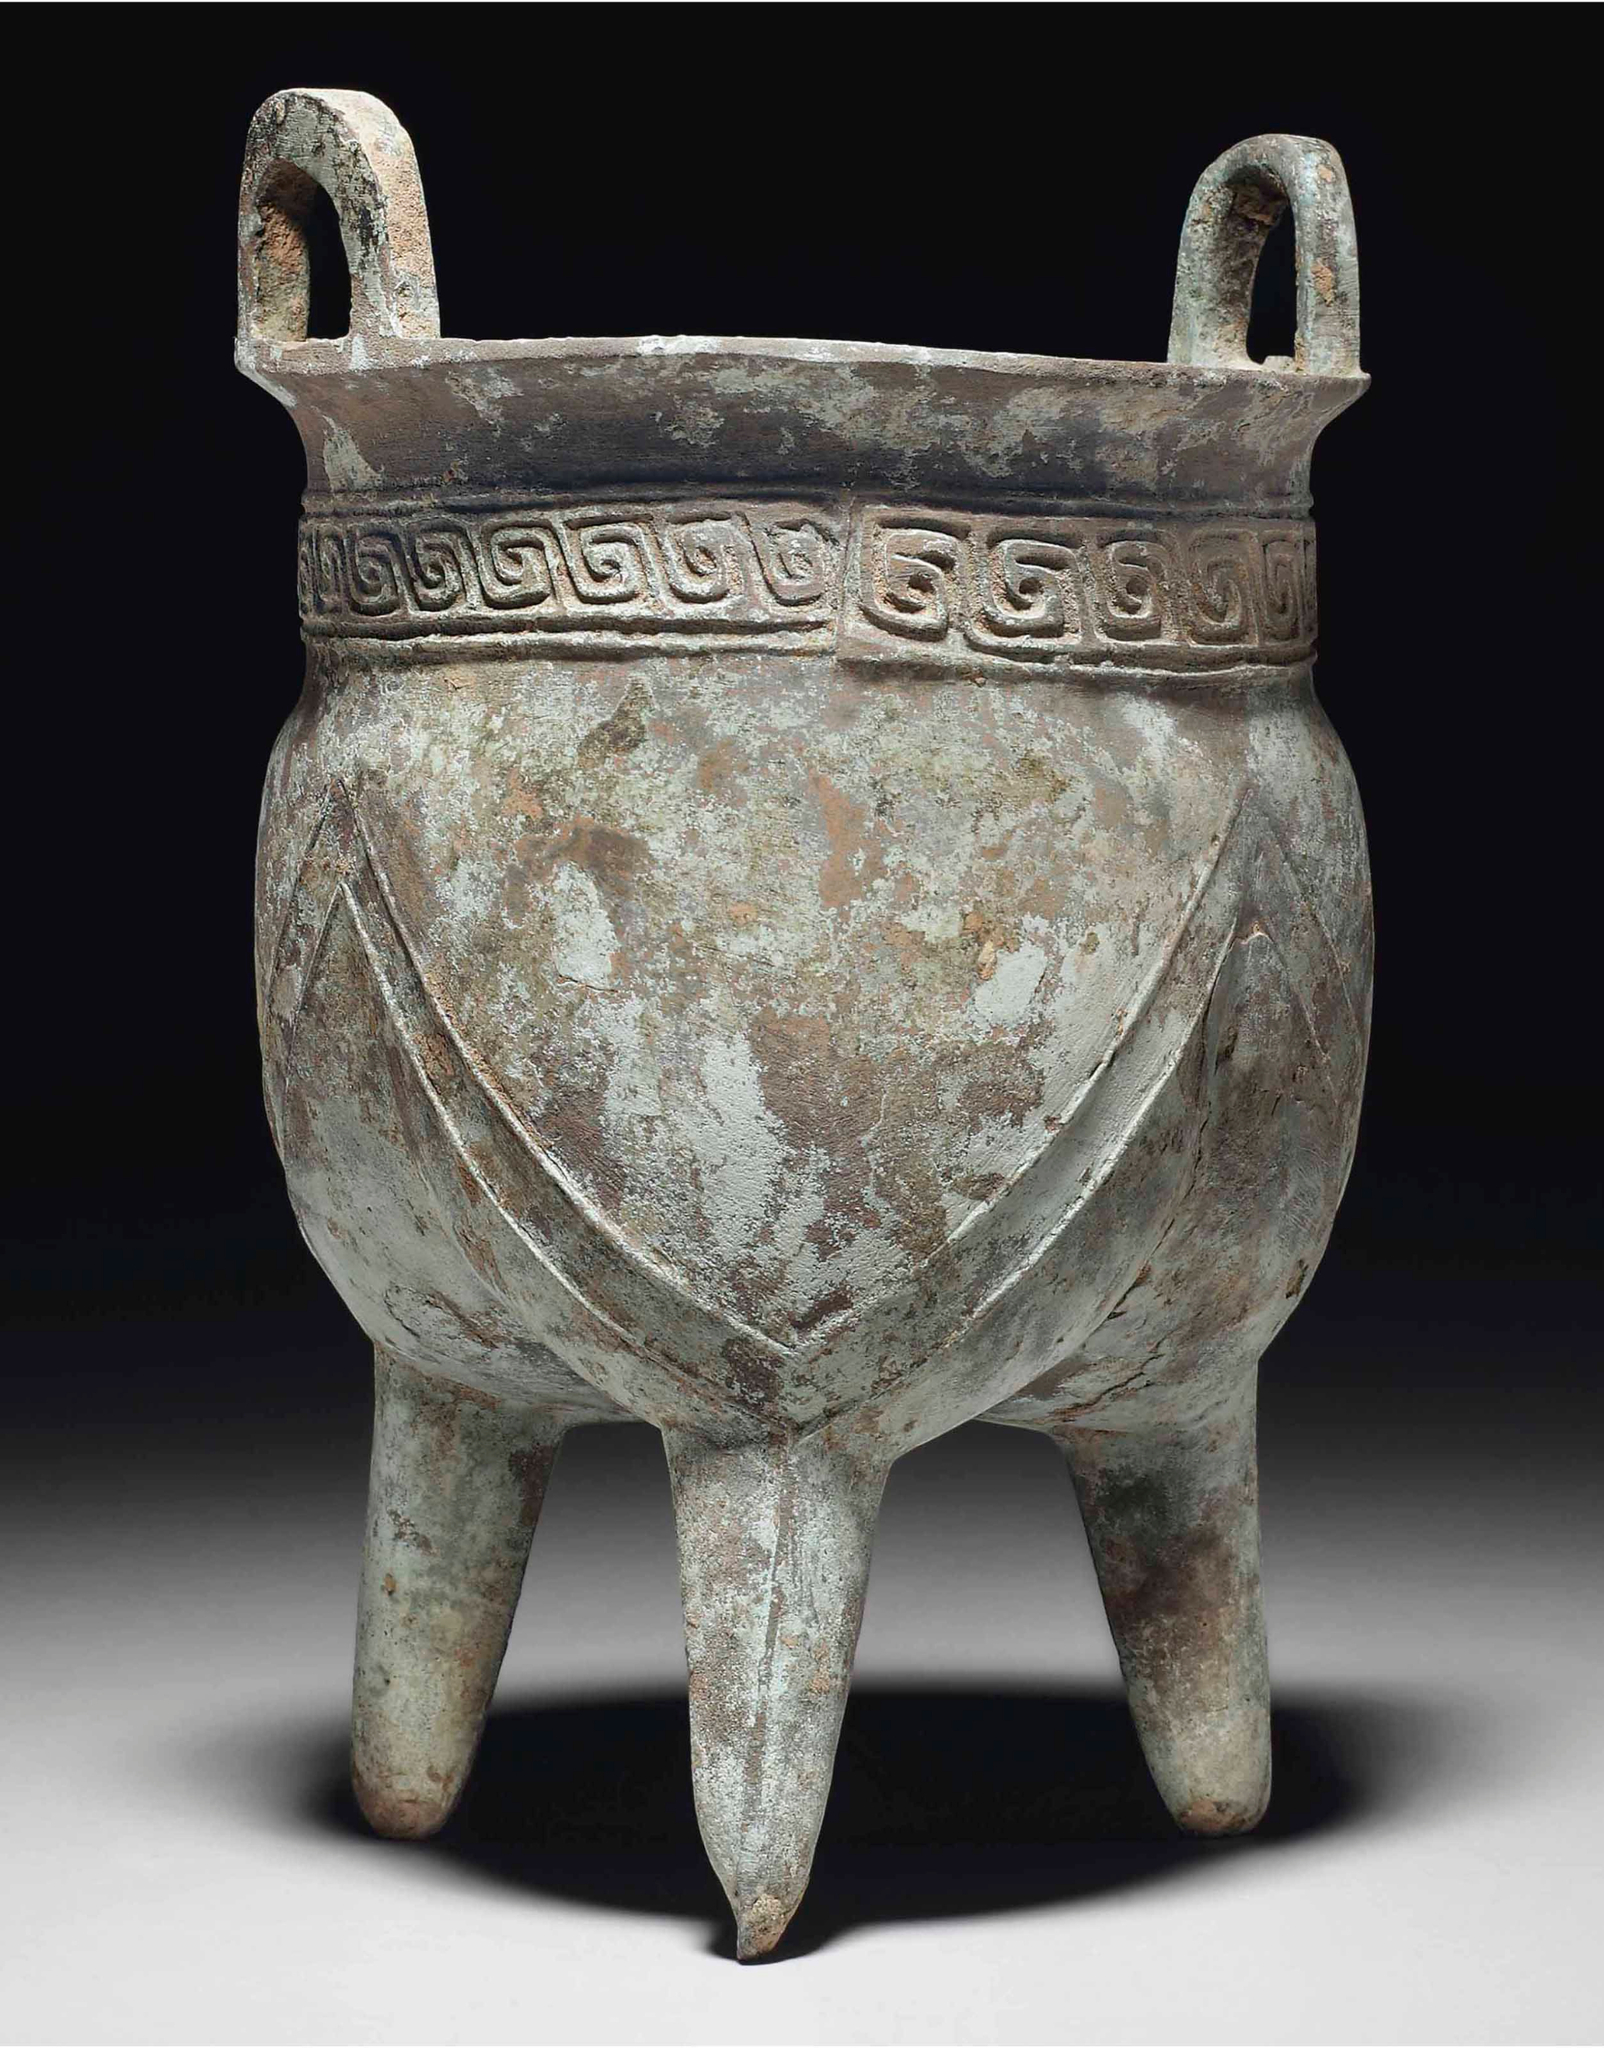 2014_NYR_02872_0984_000(an_unusual_bronze_ritual_tripod_food_vessel_liding_early_shang_dynasty)